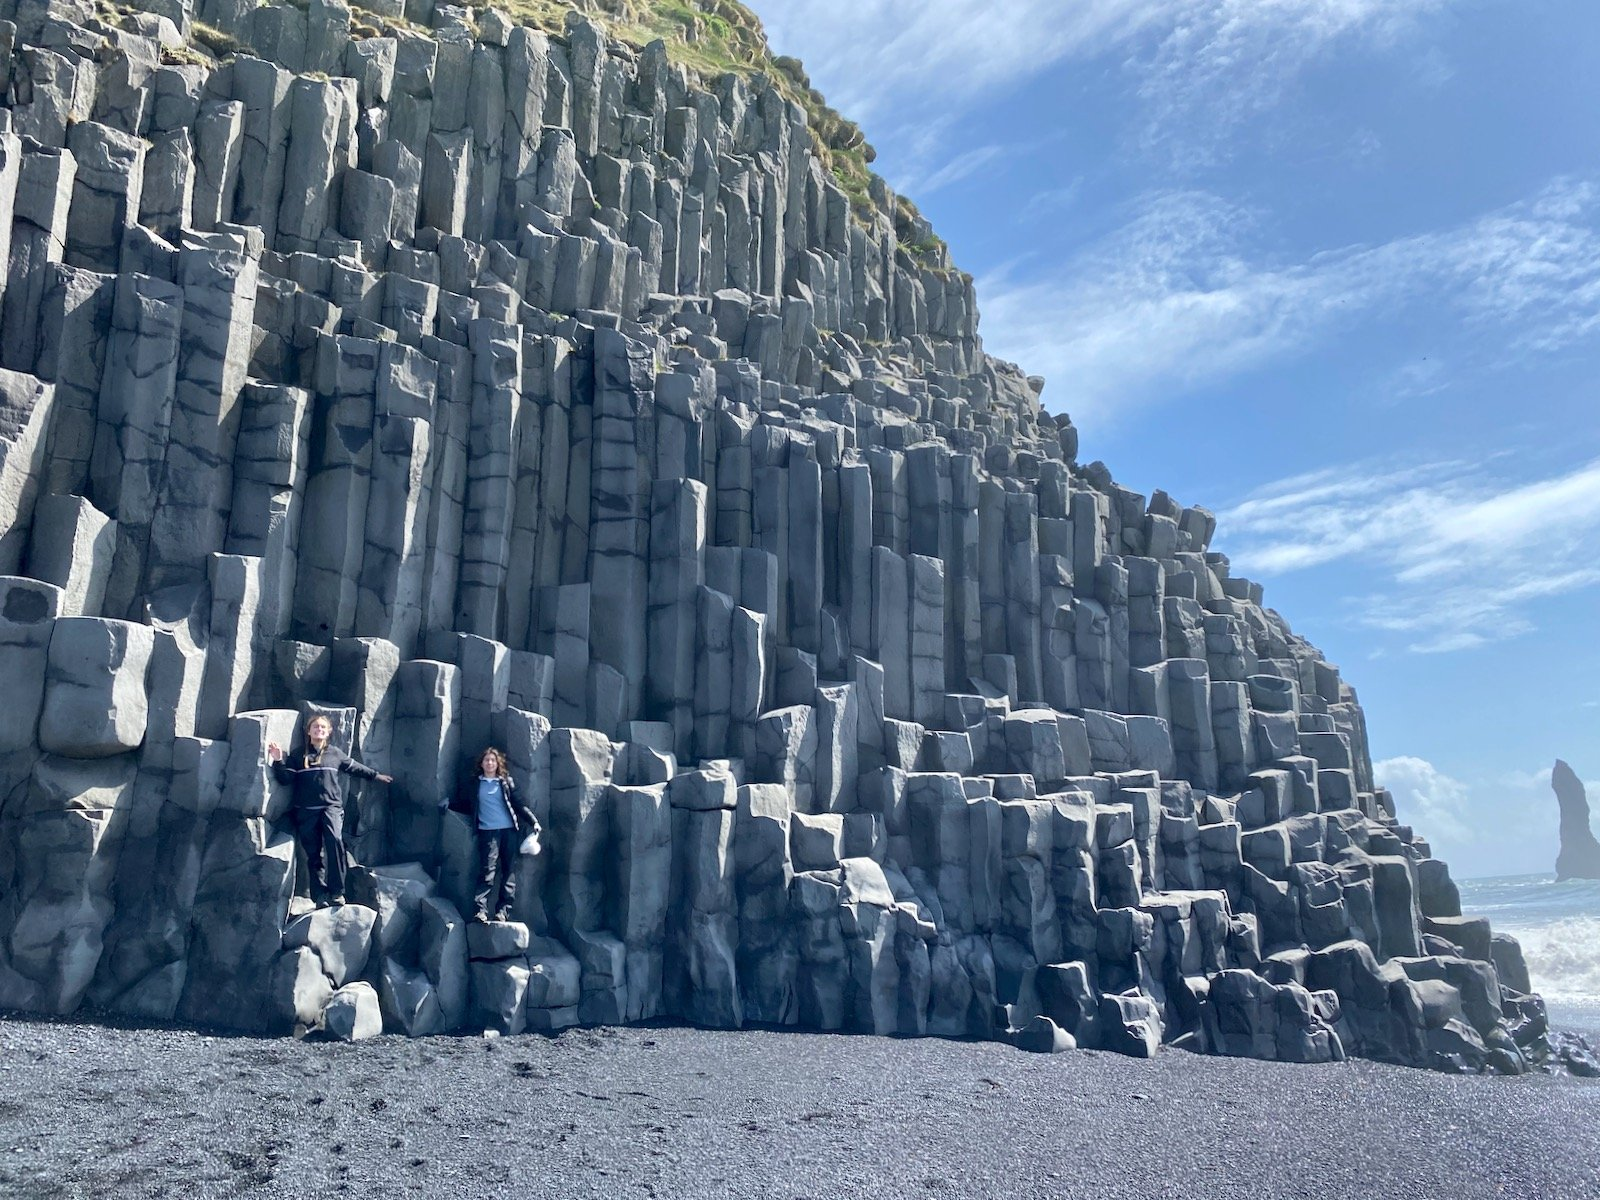 Sisters posing on the Basalt Columns in Iceland.